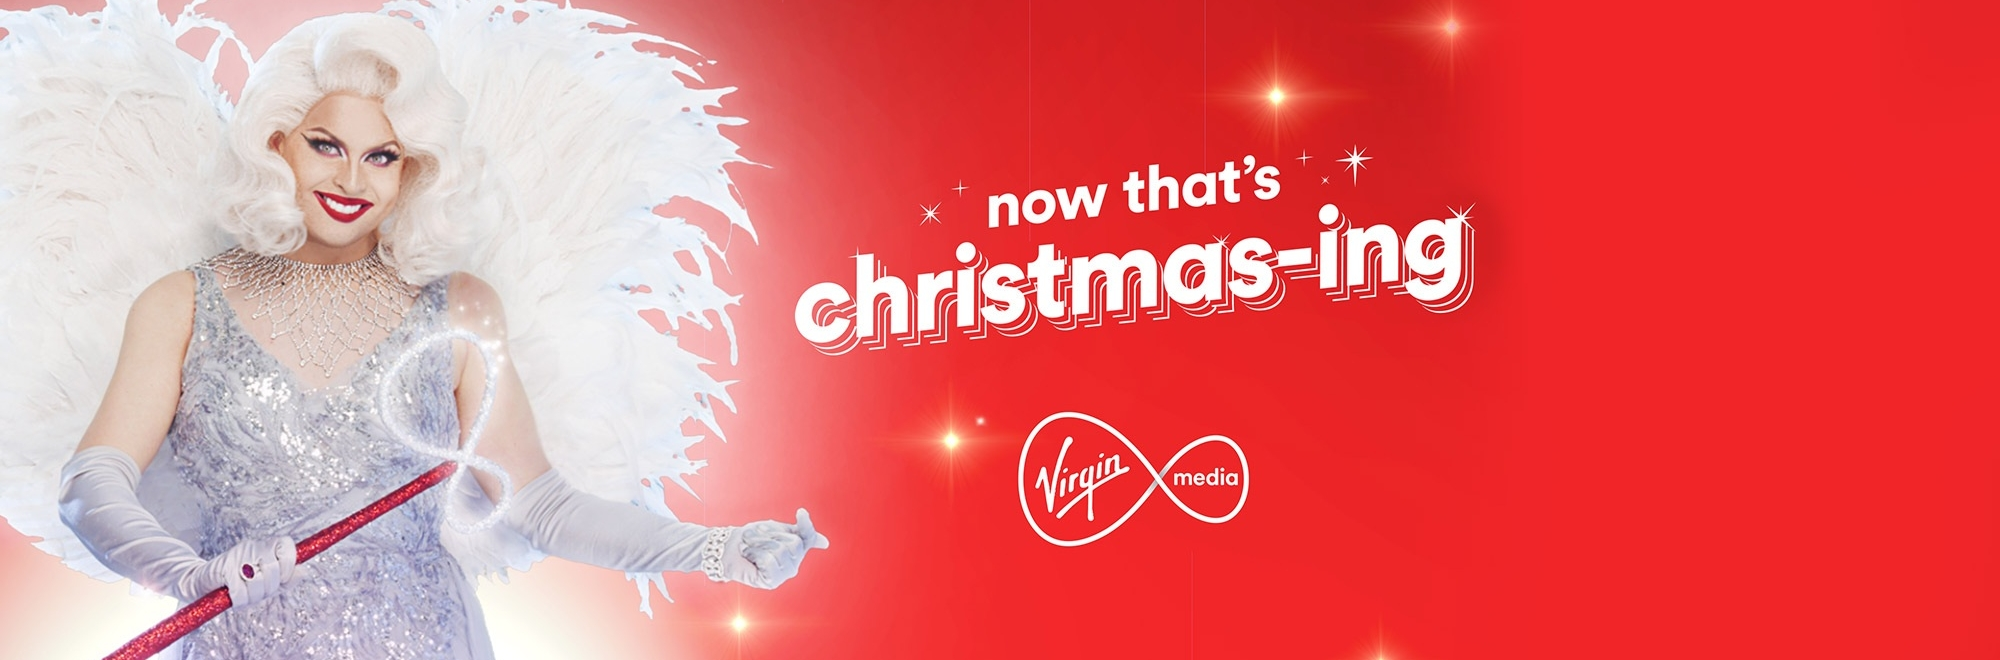 Virgin Media's first-ever Christmas campaign by RAPP UK